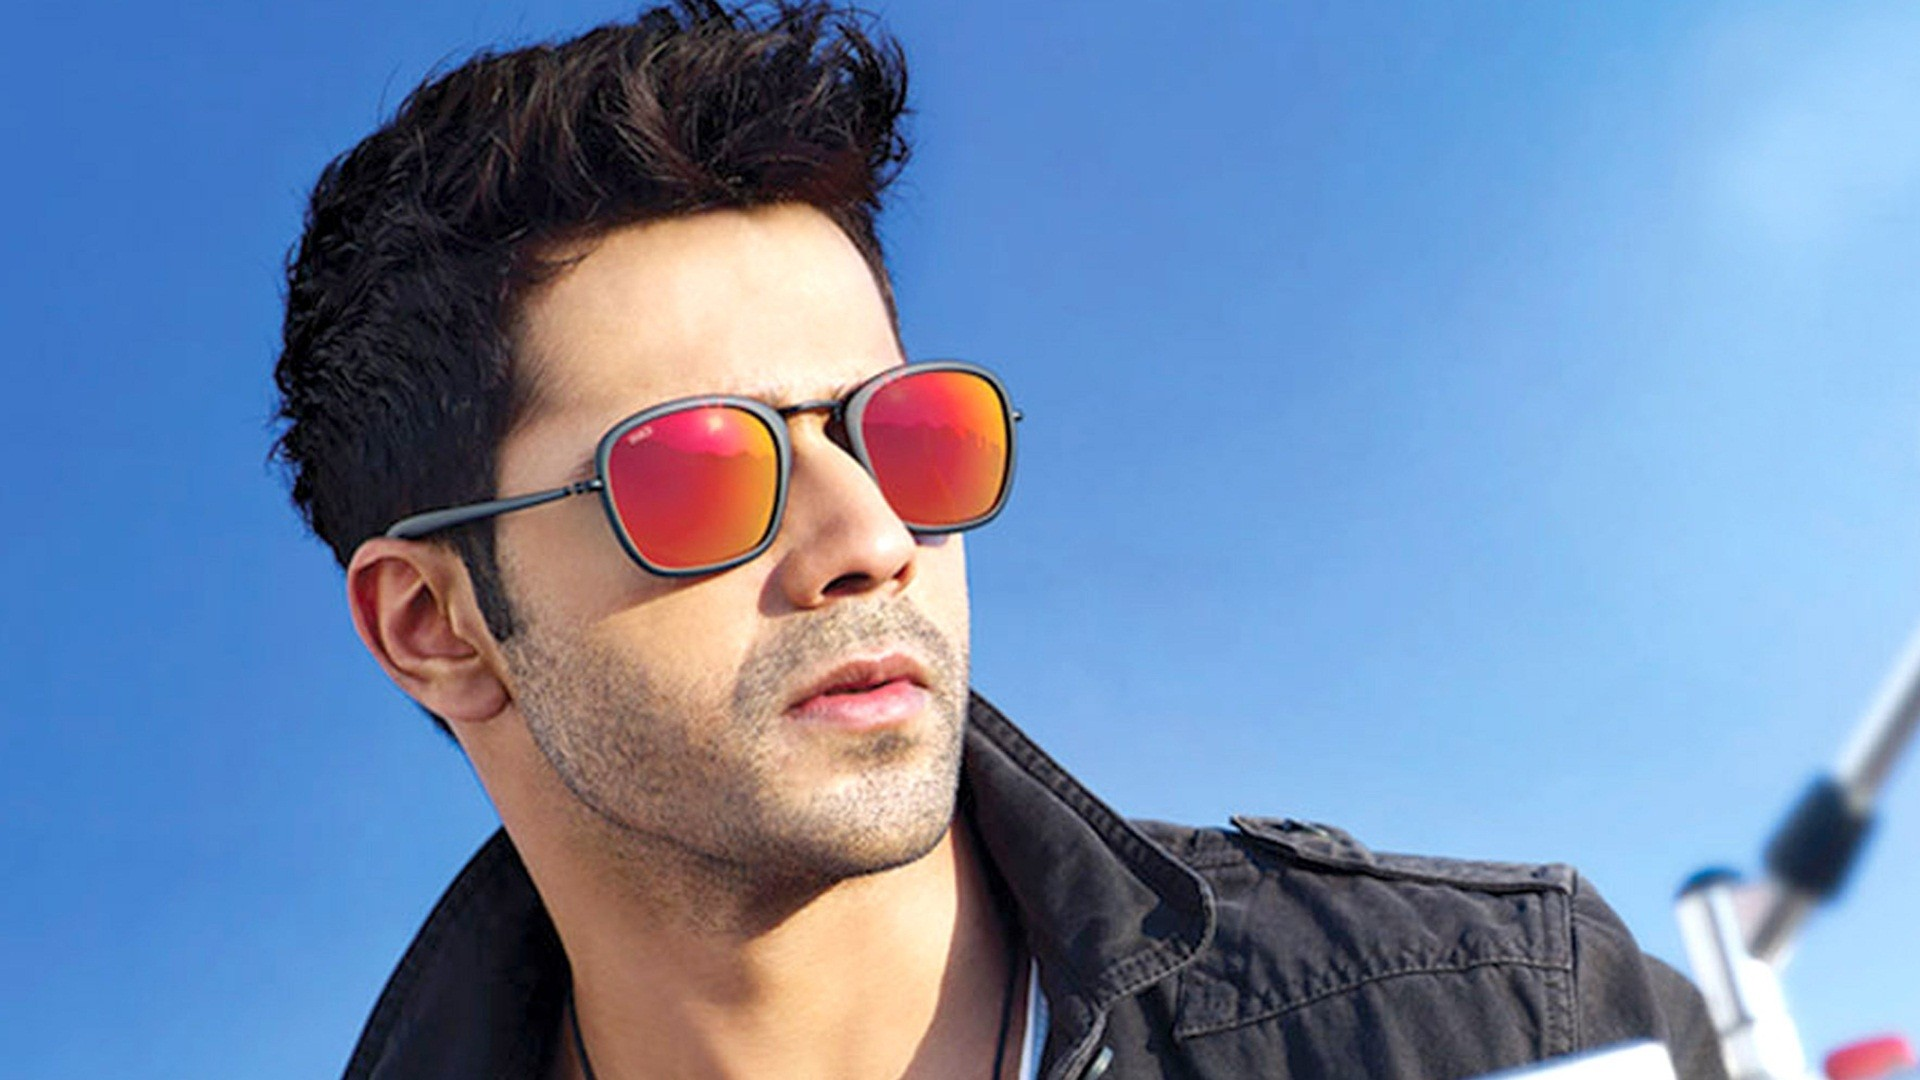 Varun dhawan hd wallpapers dazzling wallpaper pictures to pin on